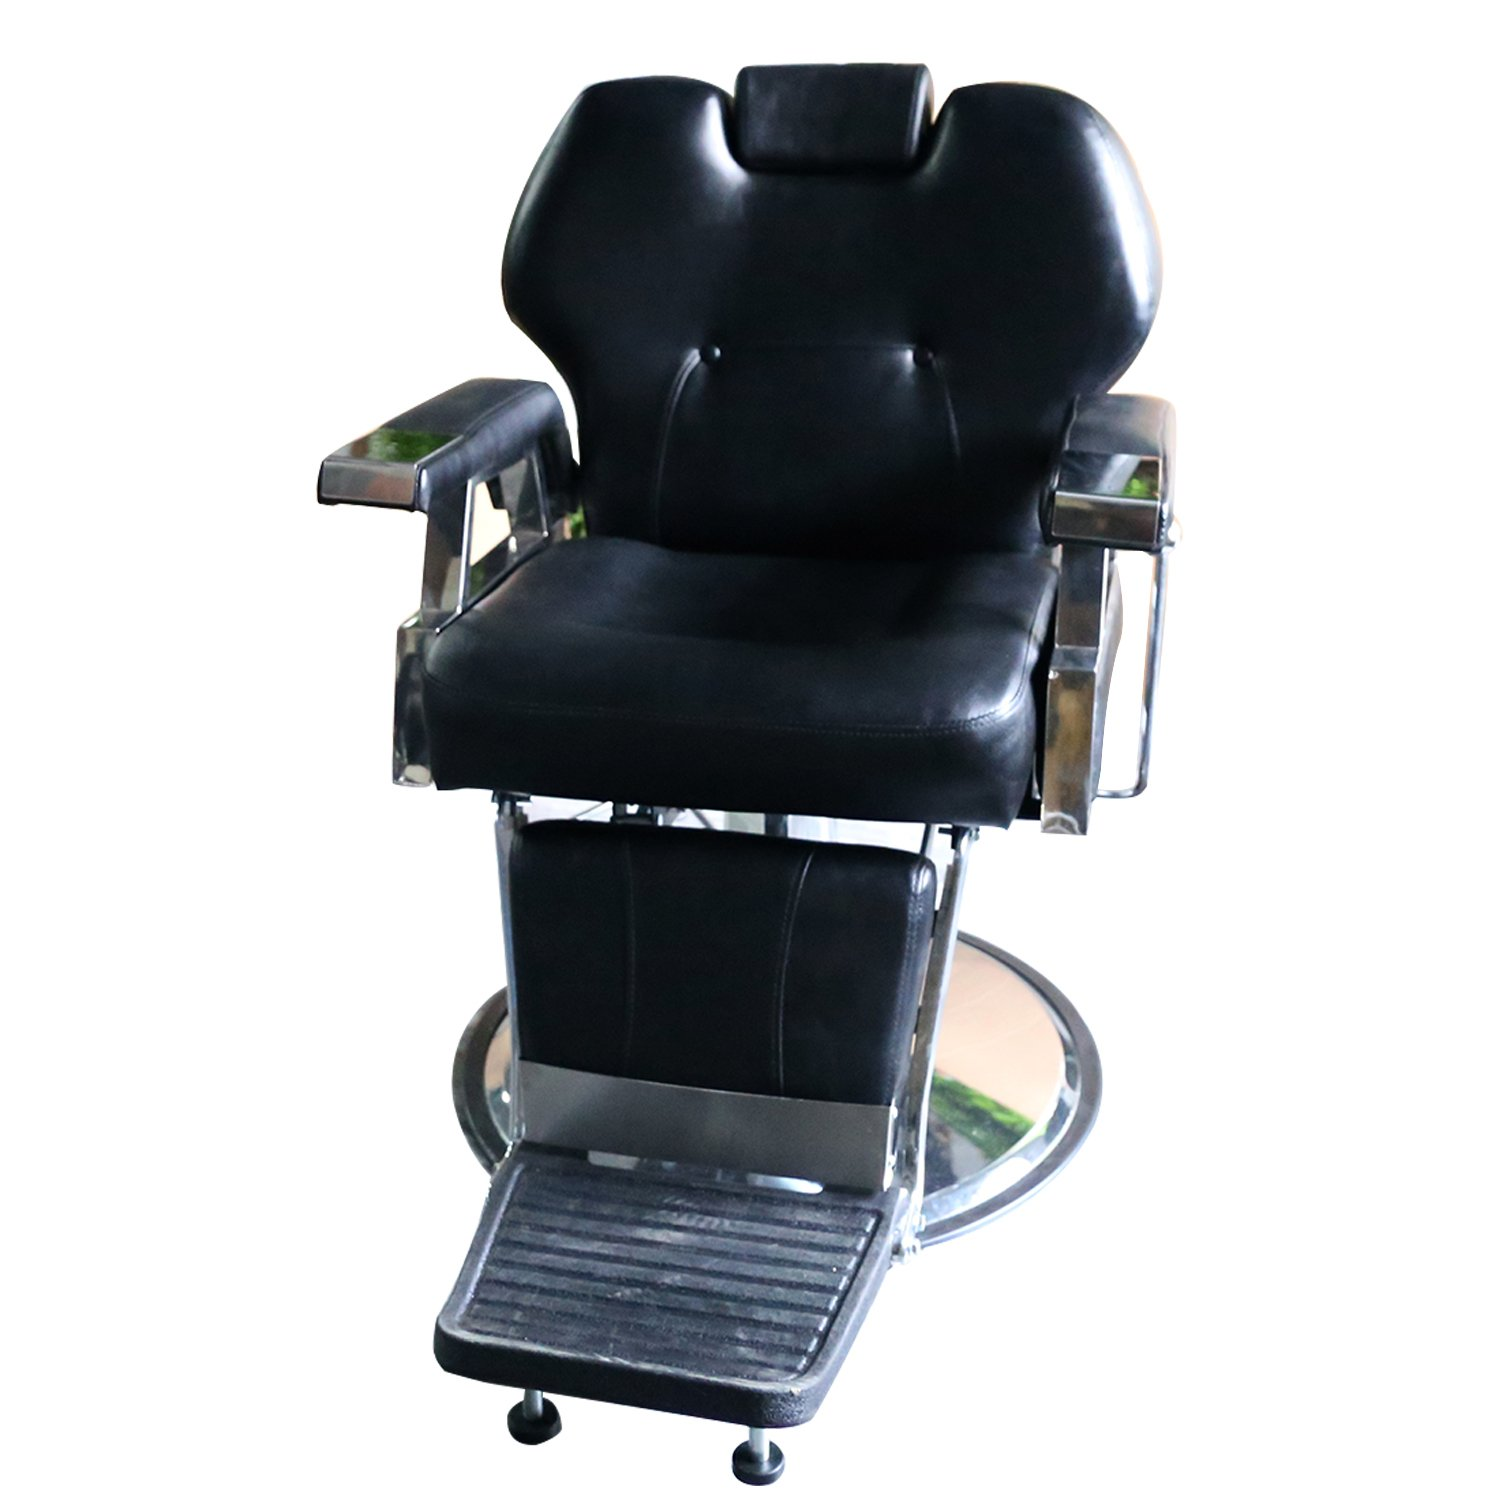 Wonlink All Purpose Hydraulic Recline Barber Chair Salon Beauty Spa Shampoo Hair Styling black